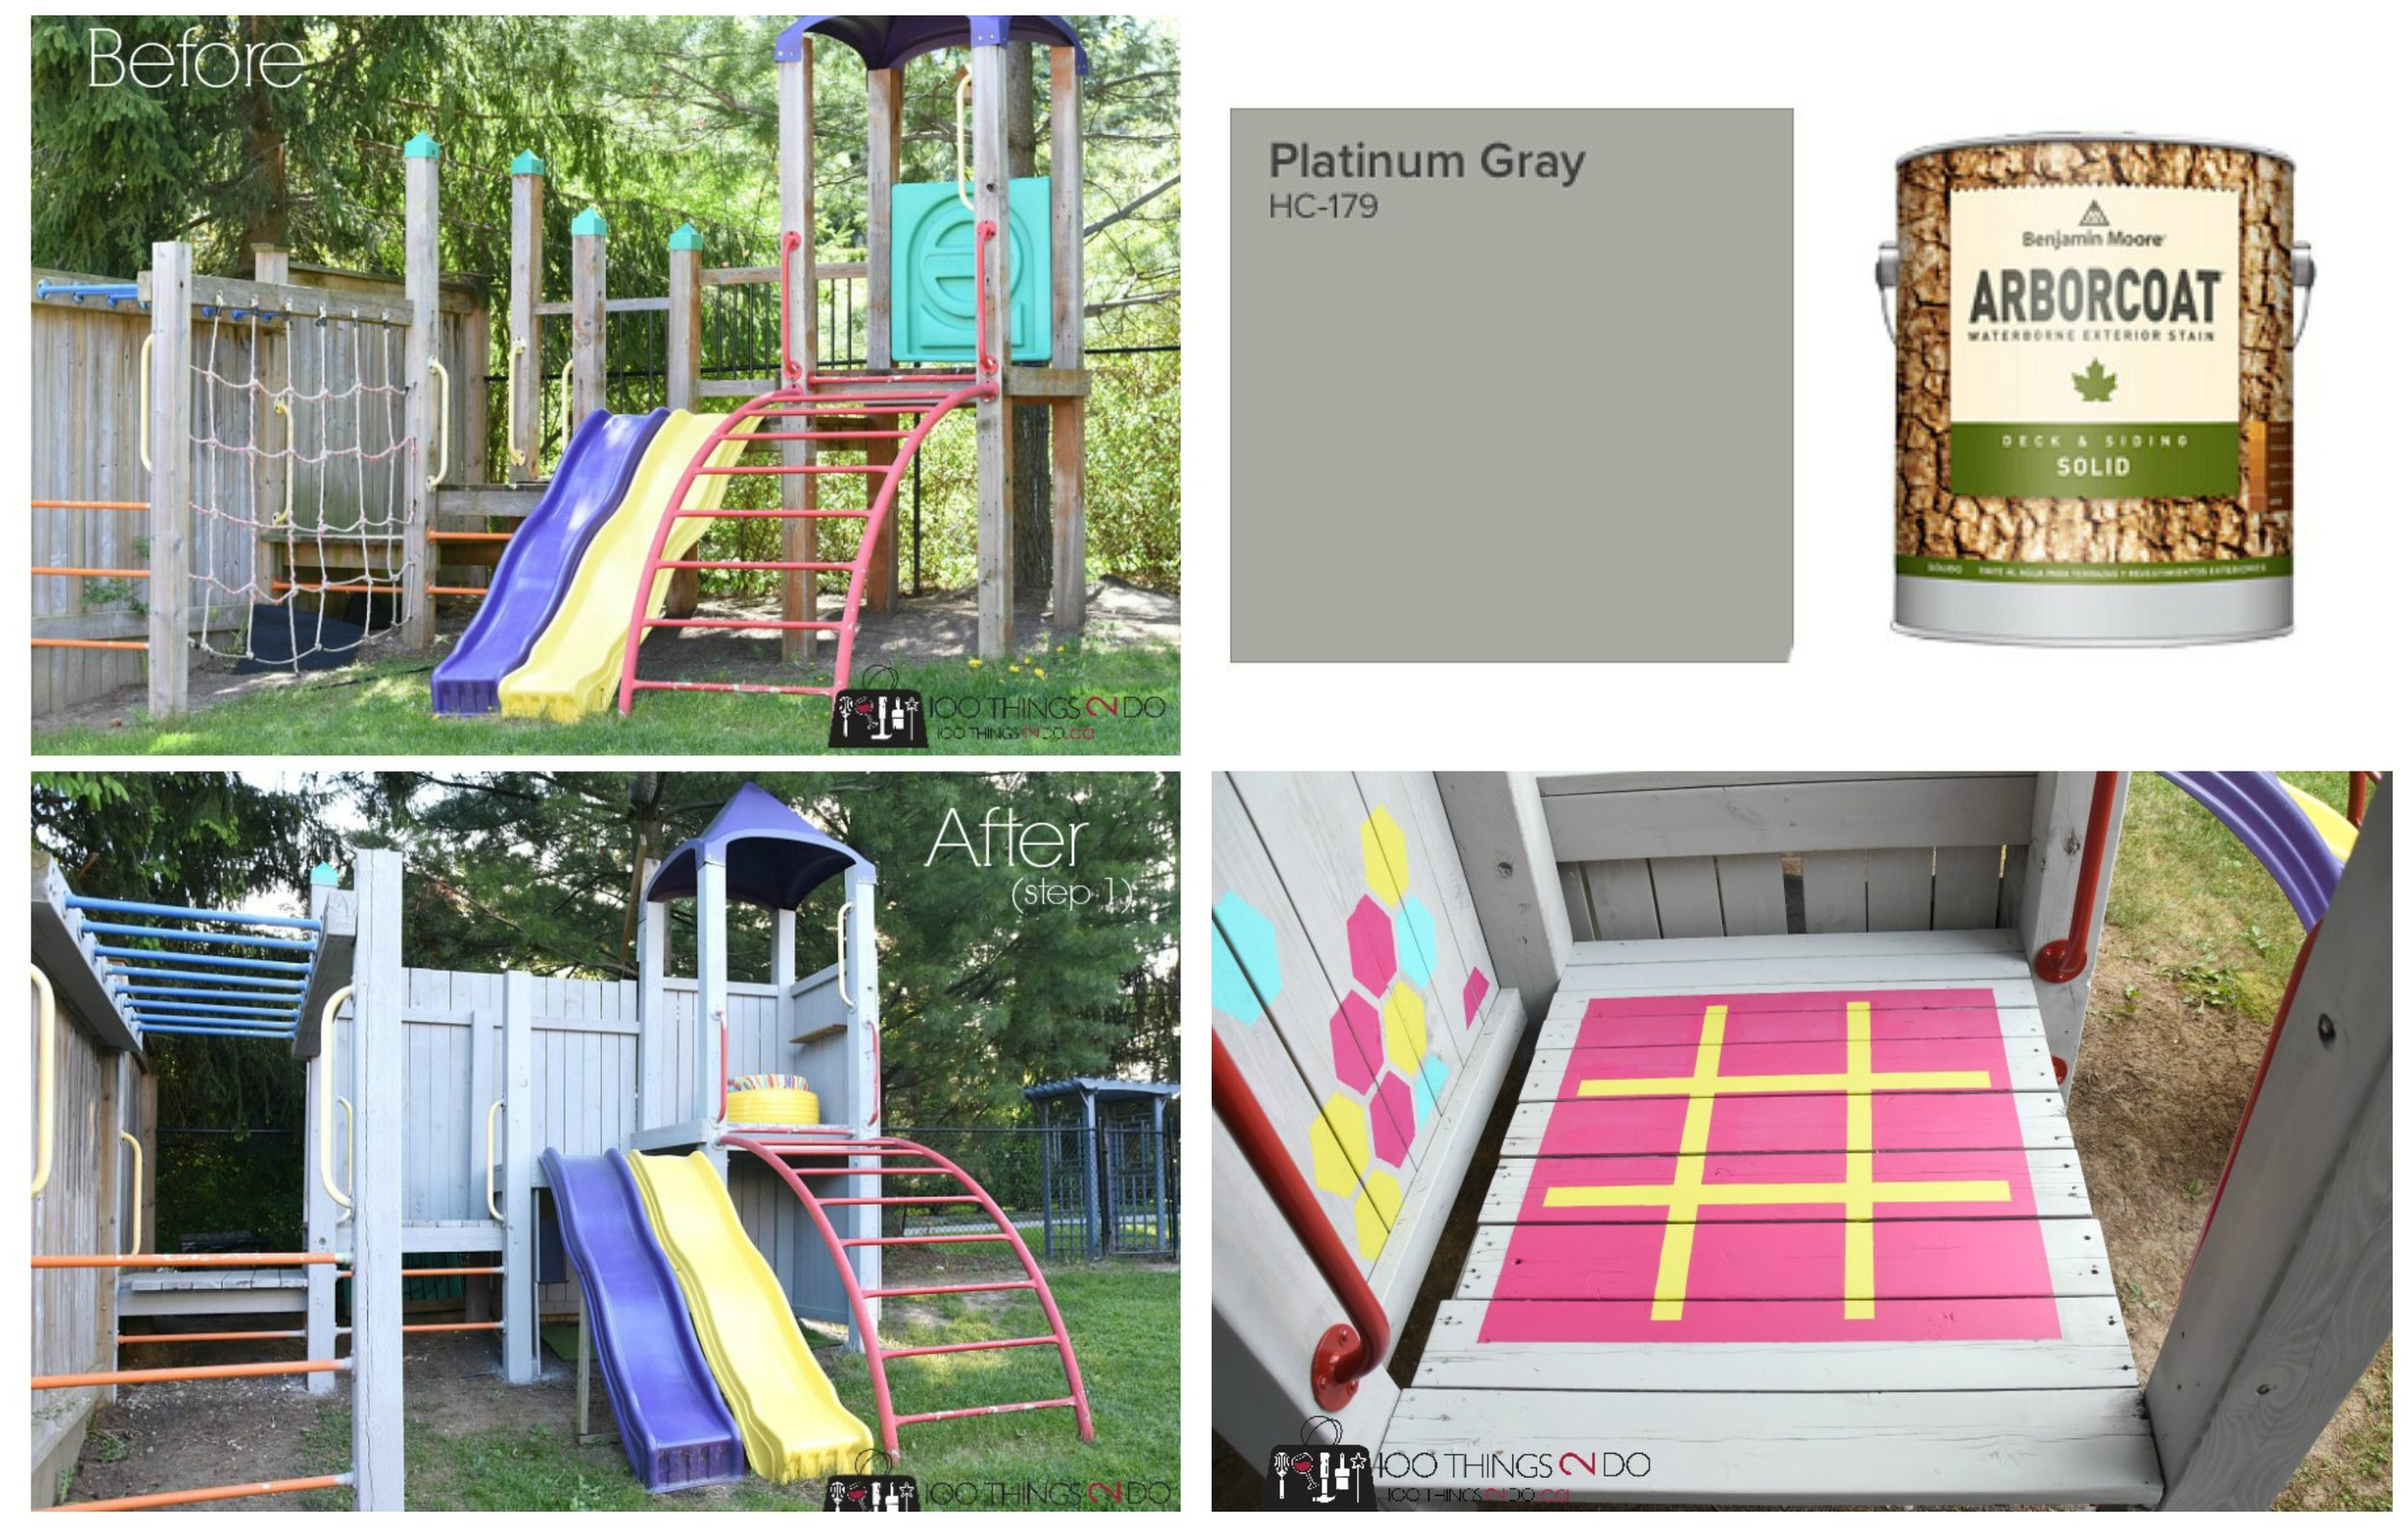 100 Things 2 Do Playground Project